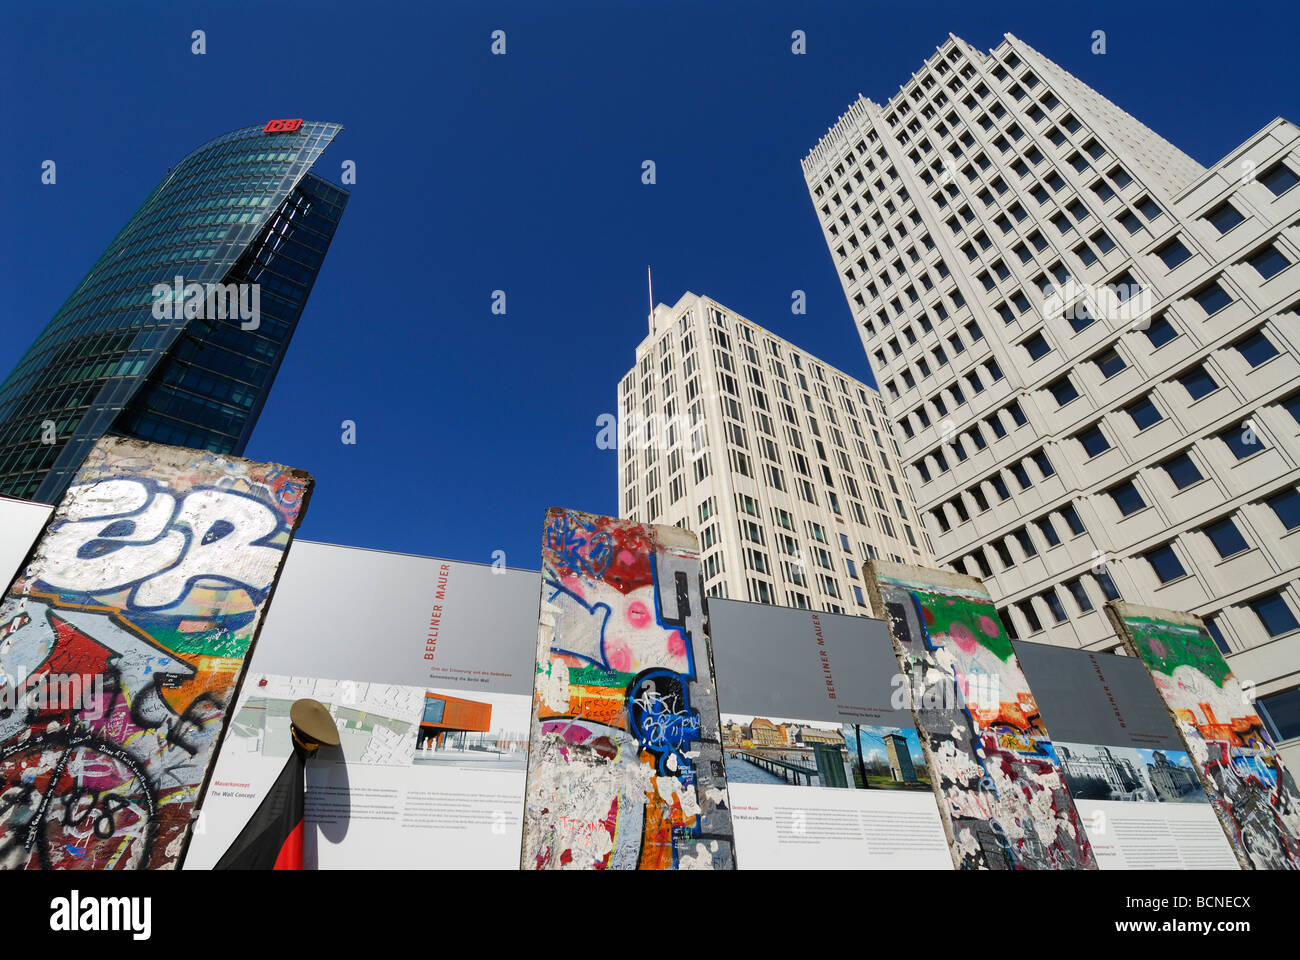 Berlin Germany Exhibition on Potsdamer Platz commemorating 20 years since the fall of the Berlin wall Stock Photo